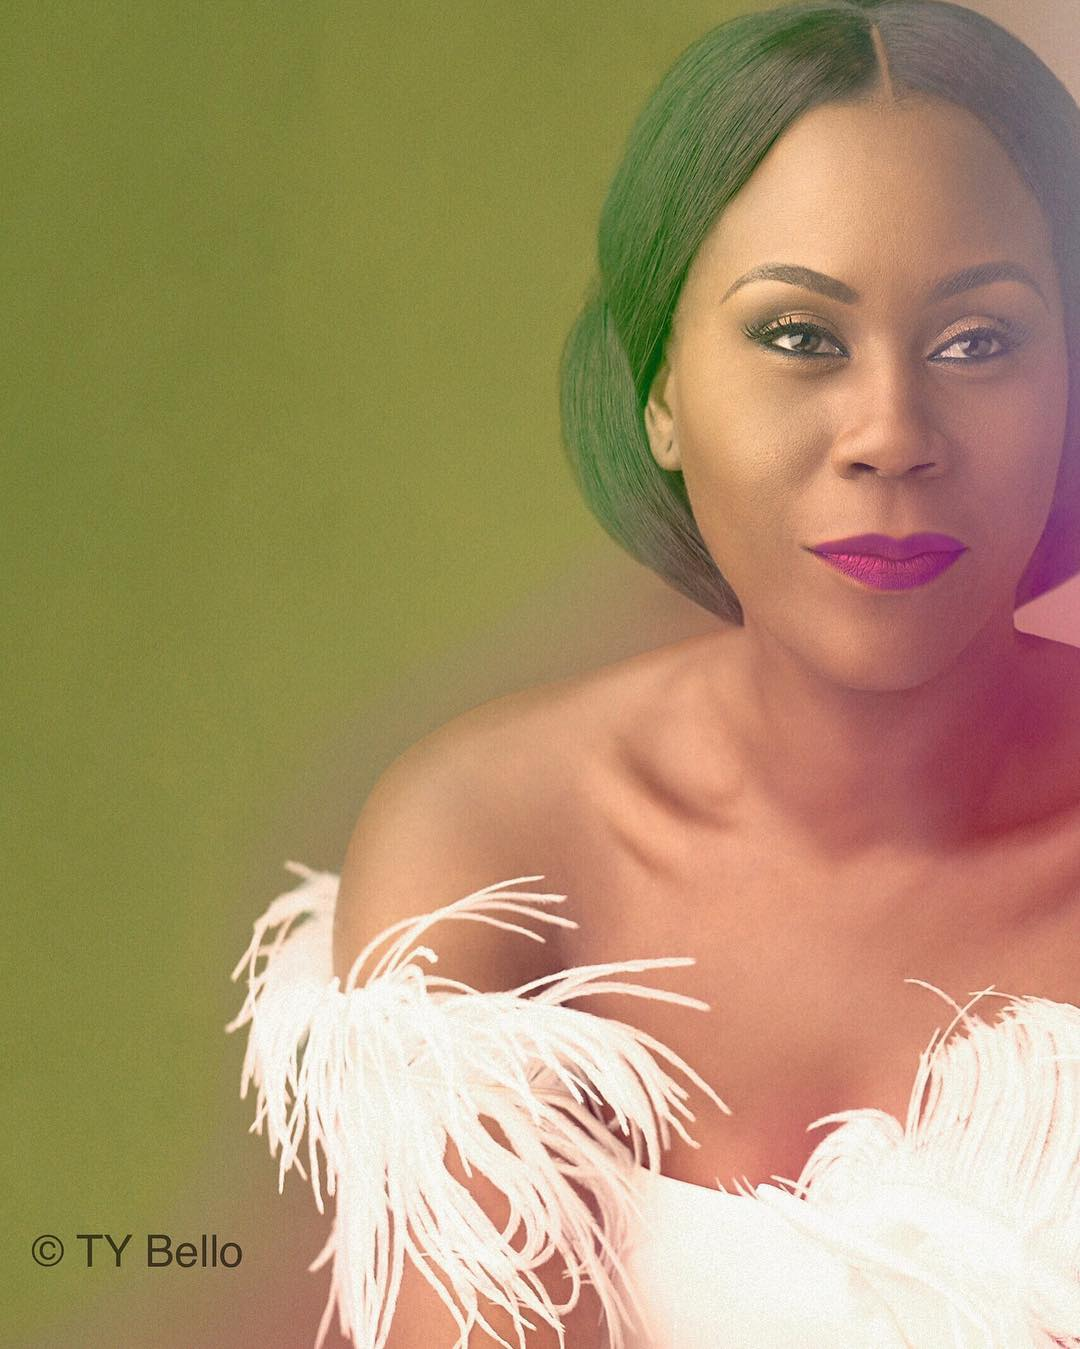 ty bello tara1 - Fabulous 40th Birthday Portraits By TY Bello